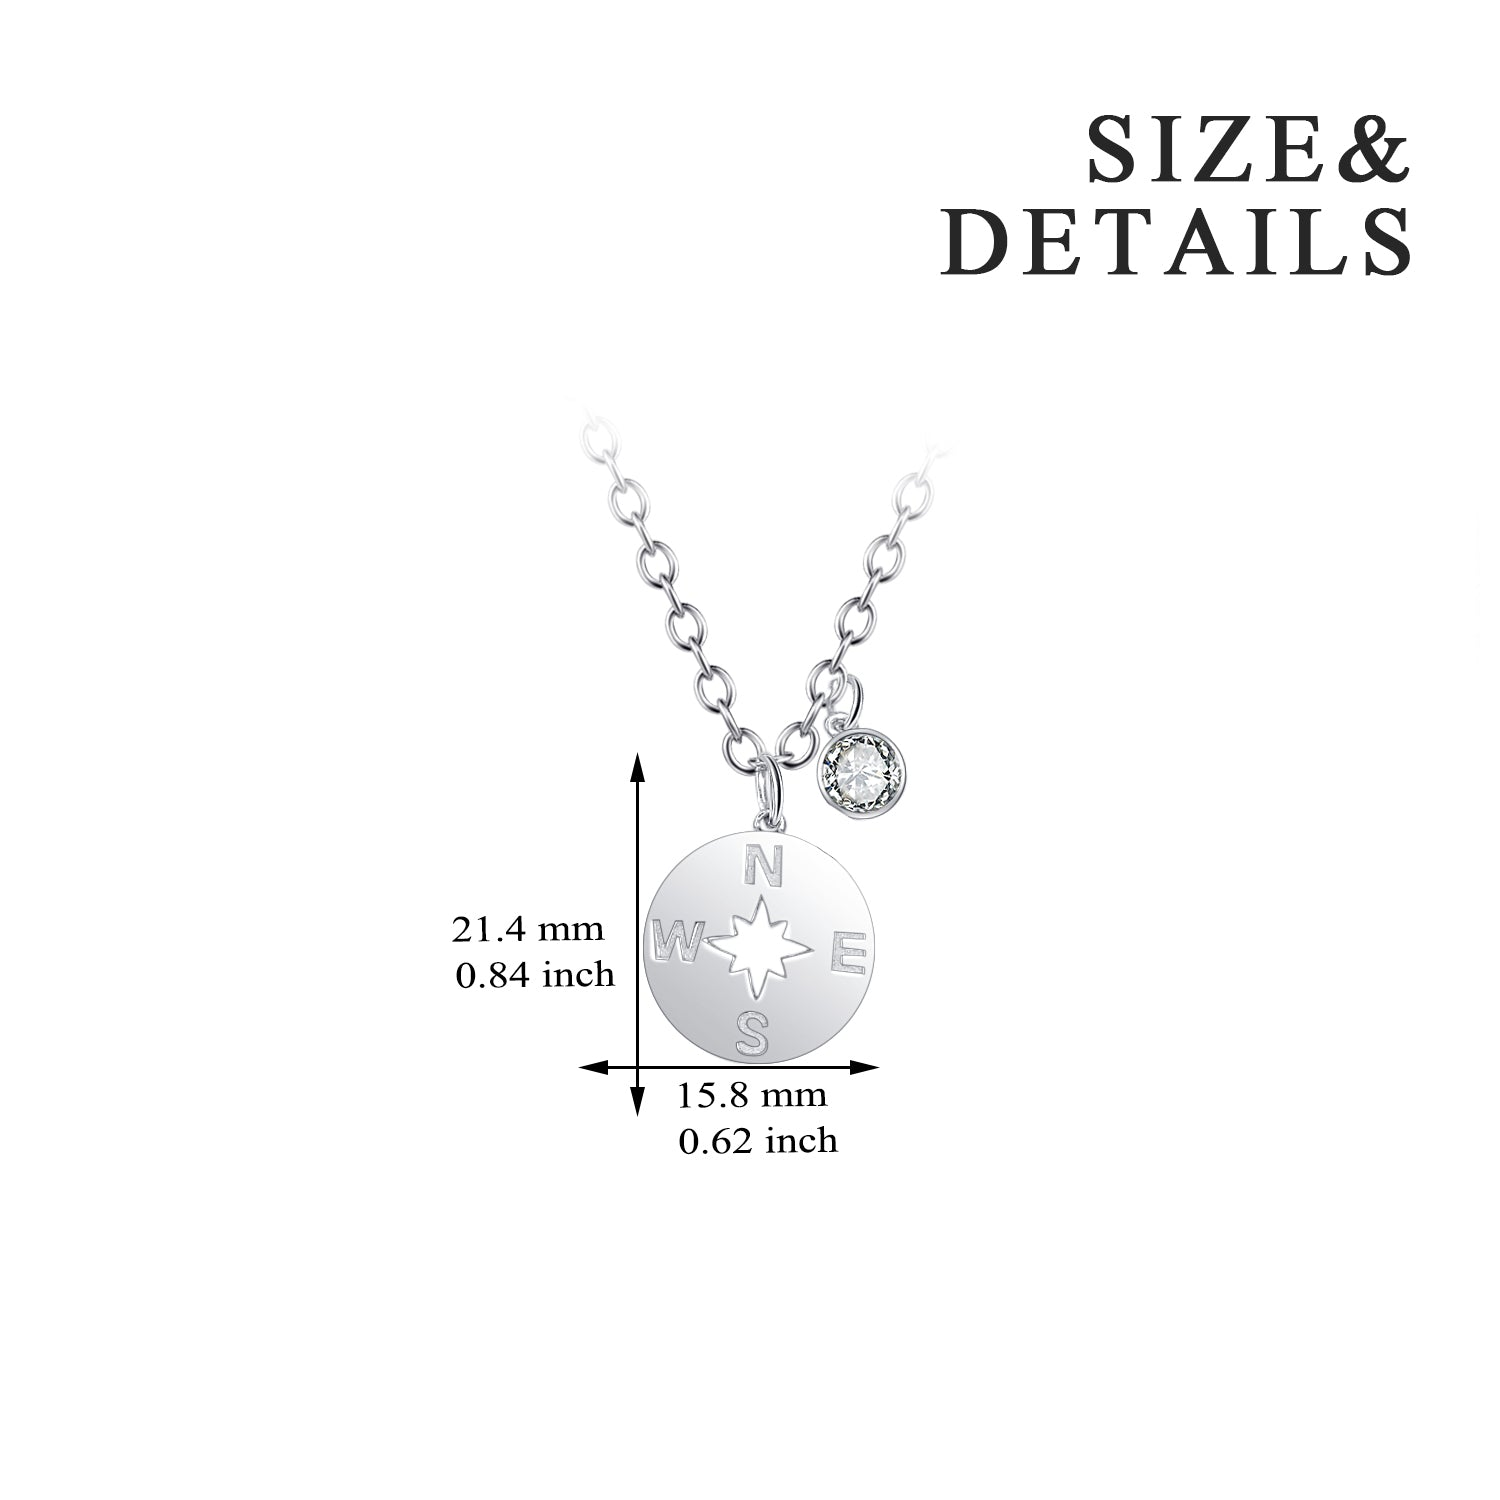 Rhodium Plating Fashion Jewelry, 925 Silver Jewelry, Round Disc Pendant Necklace